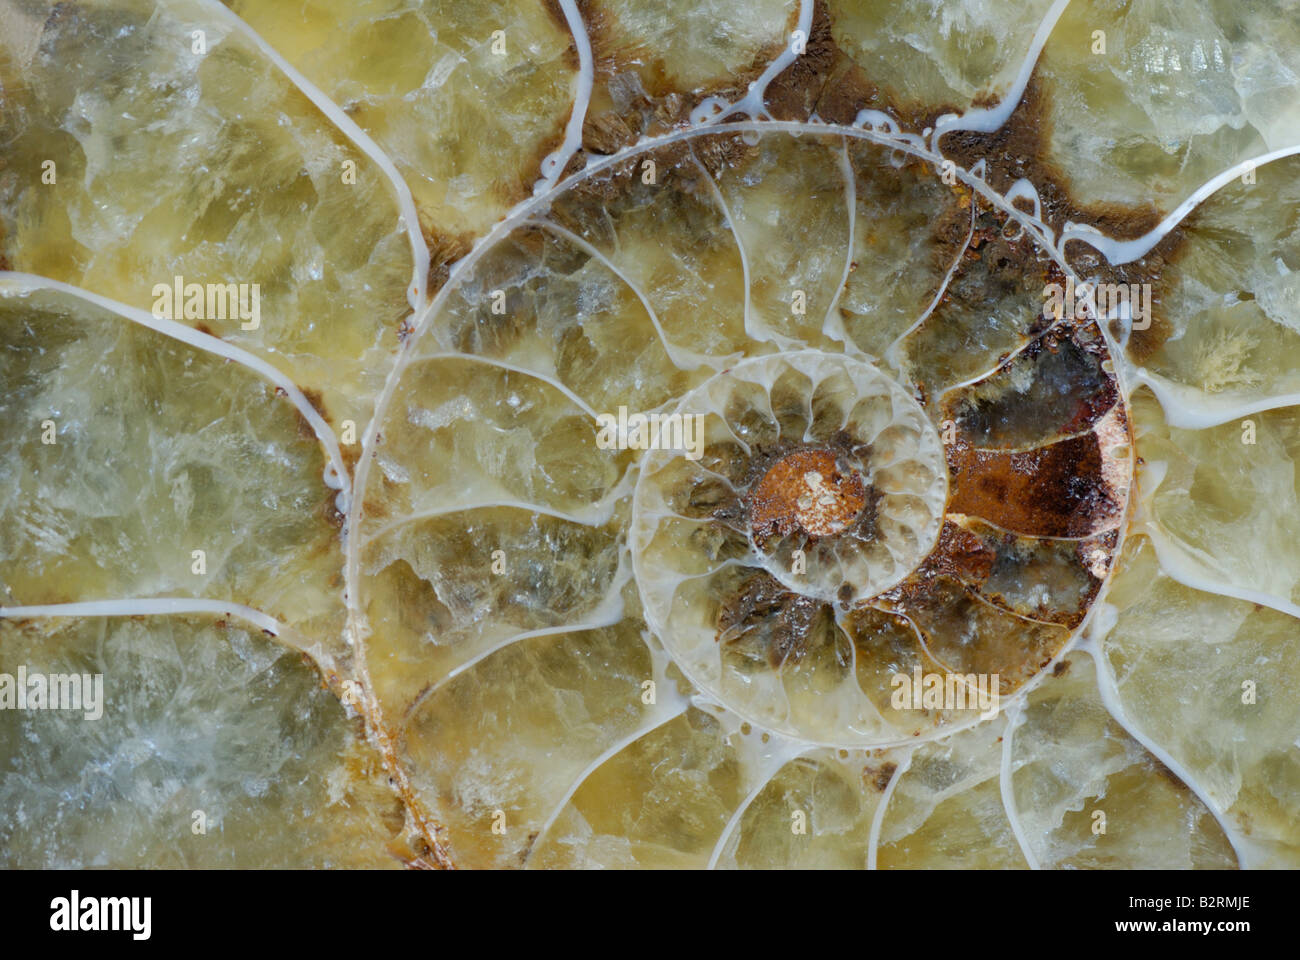 Ammonite fossil from Madagascar Cretaceous Period Stock Photo